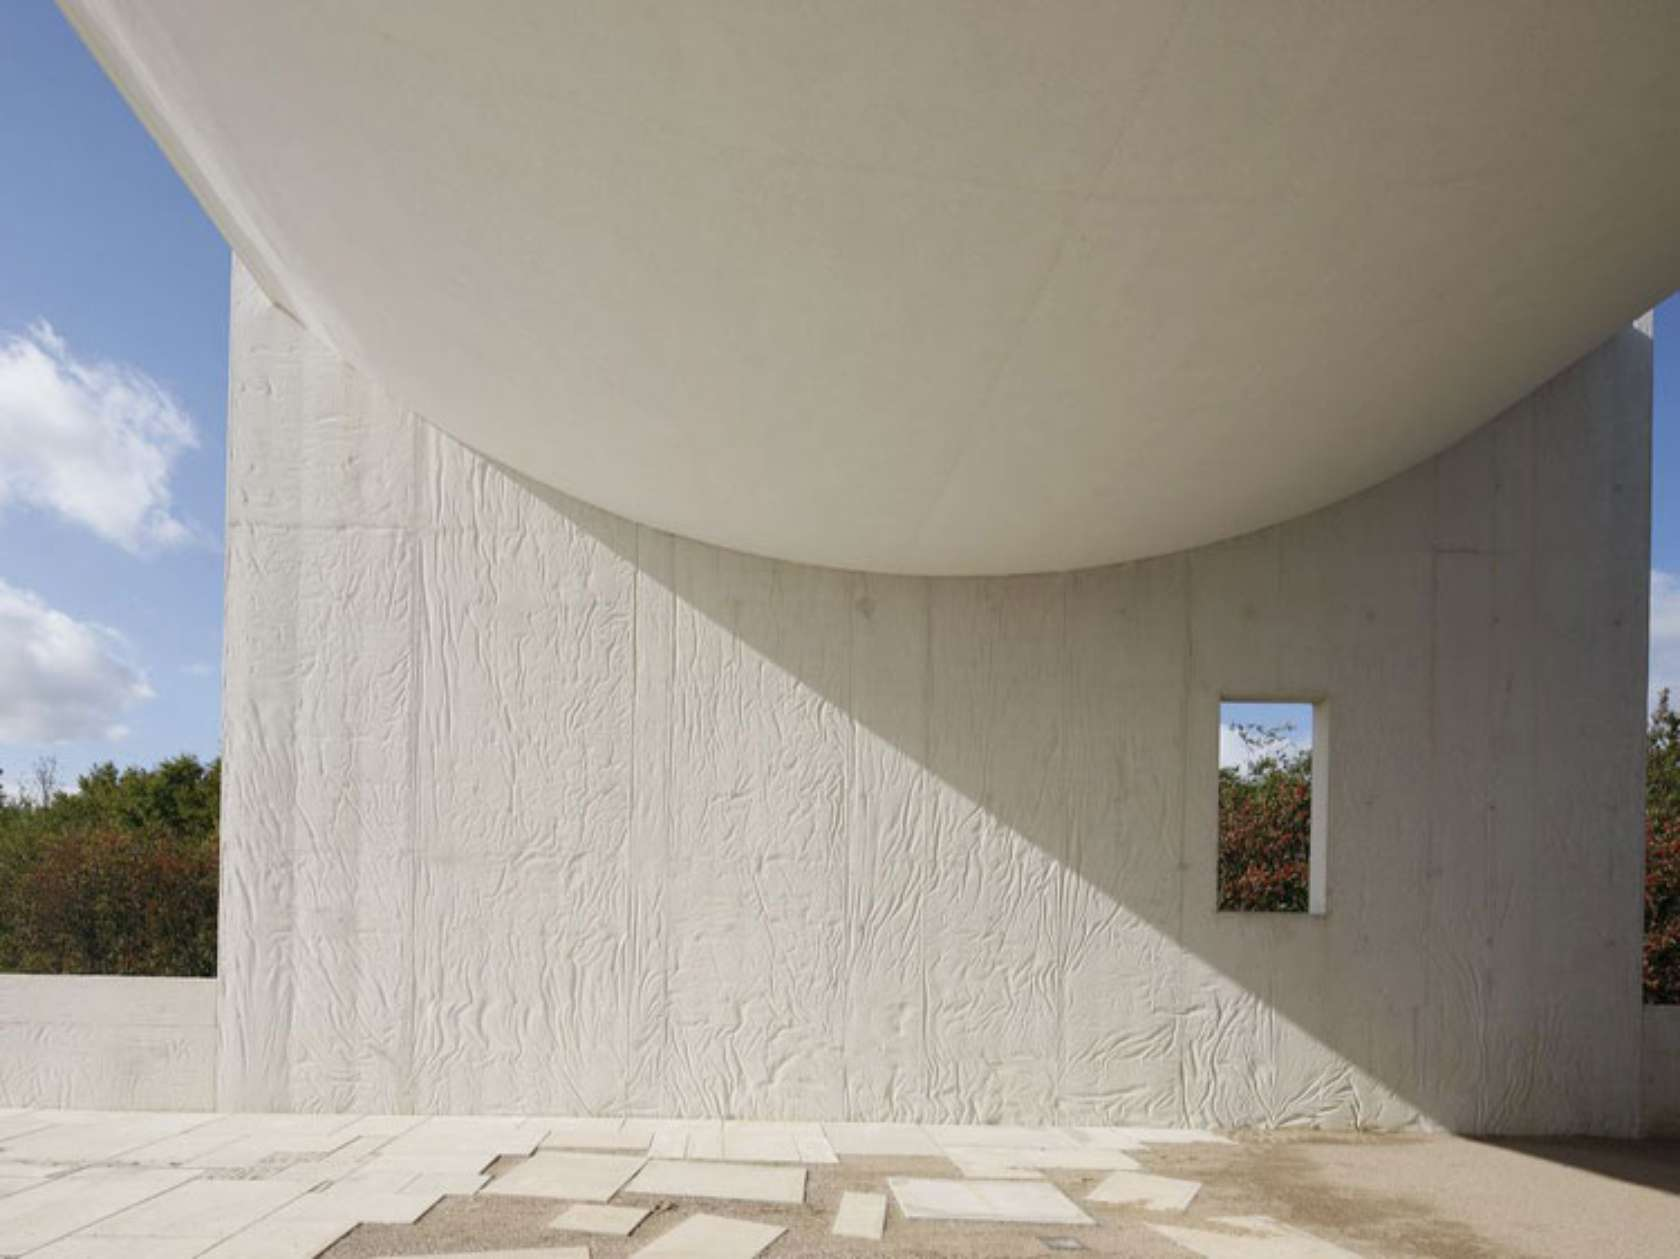 Steven holl architects architizer for White cement art